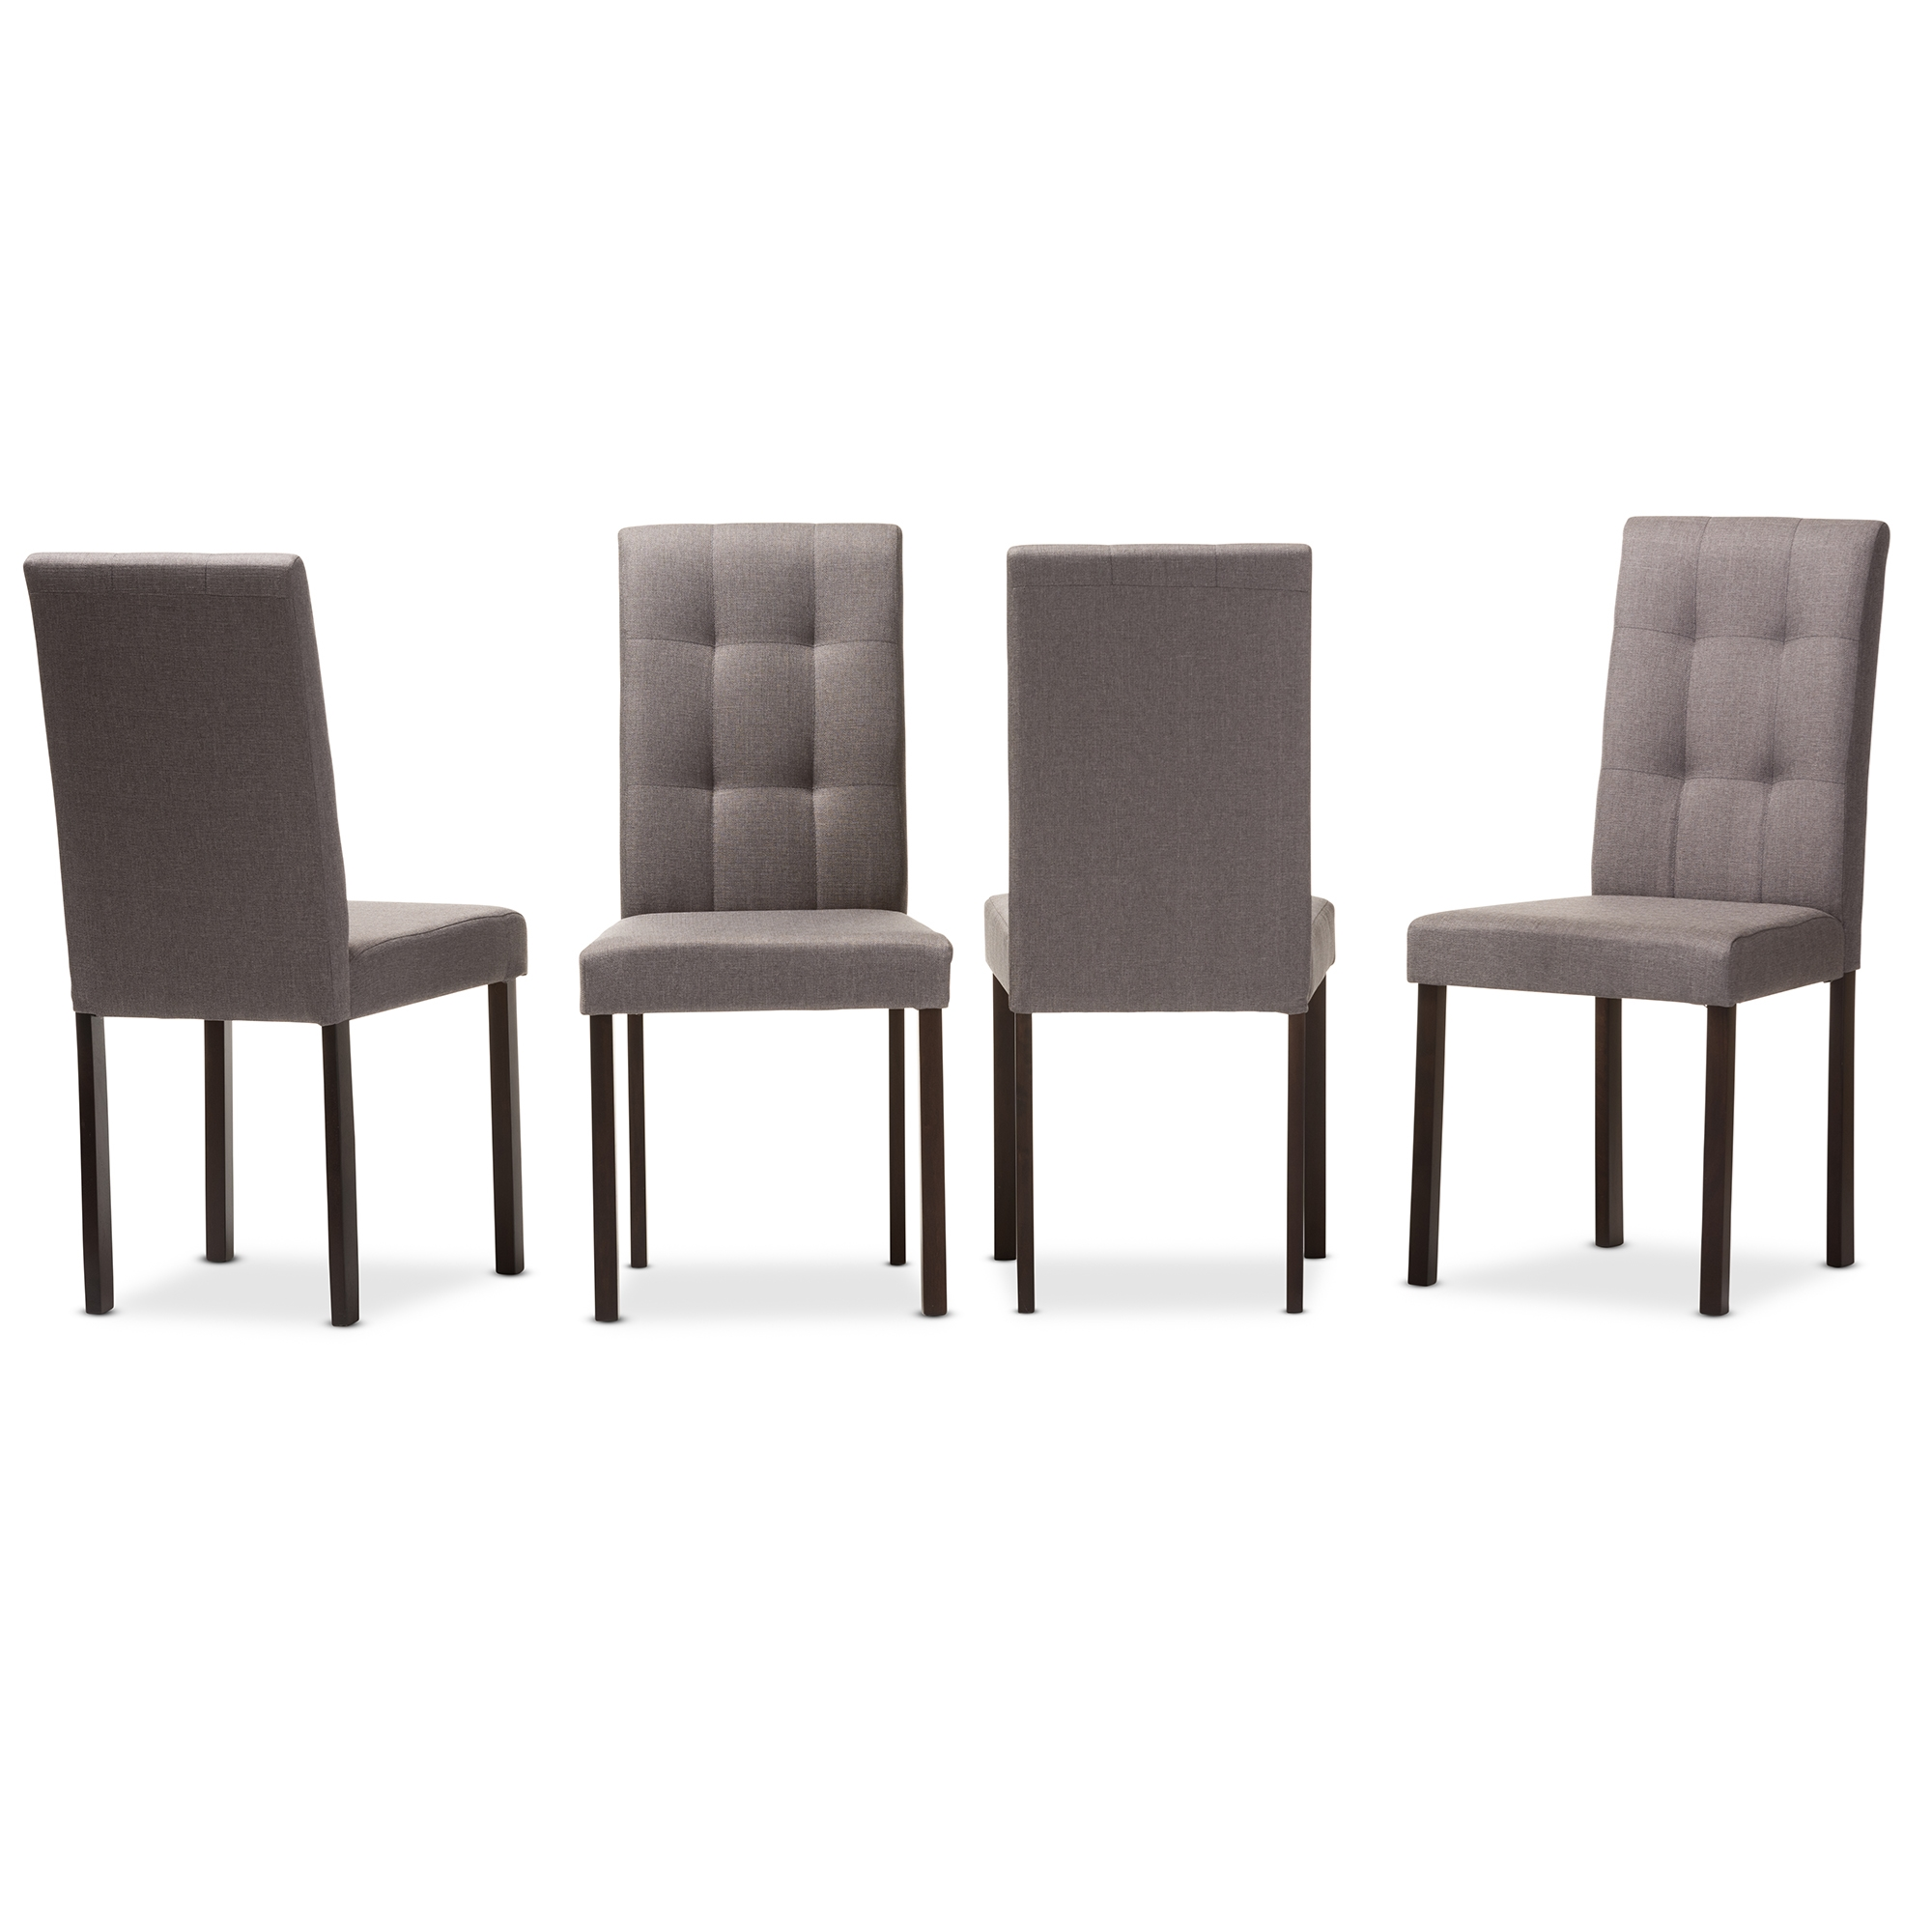 Baxton Studio Andrew Modern And Contemporary Grey Fabric Upholstered  Grid Tufting Dining Chair Baxton Studio